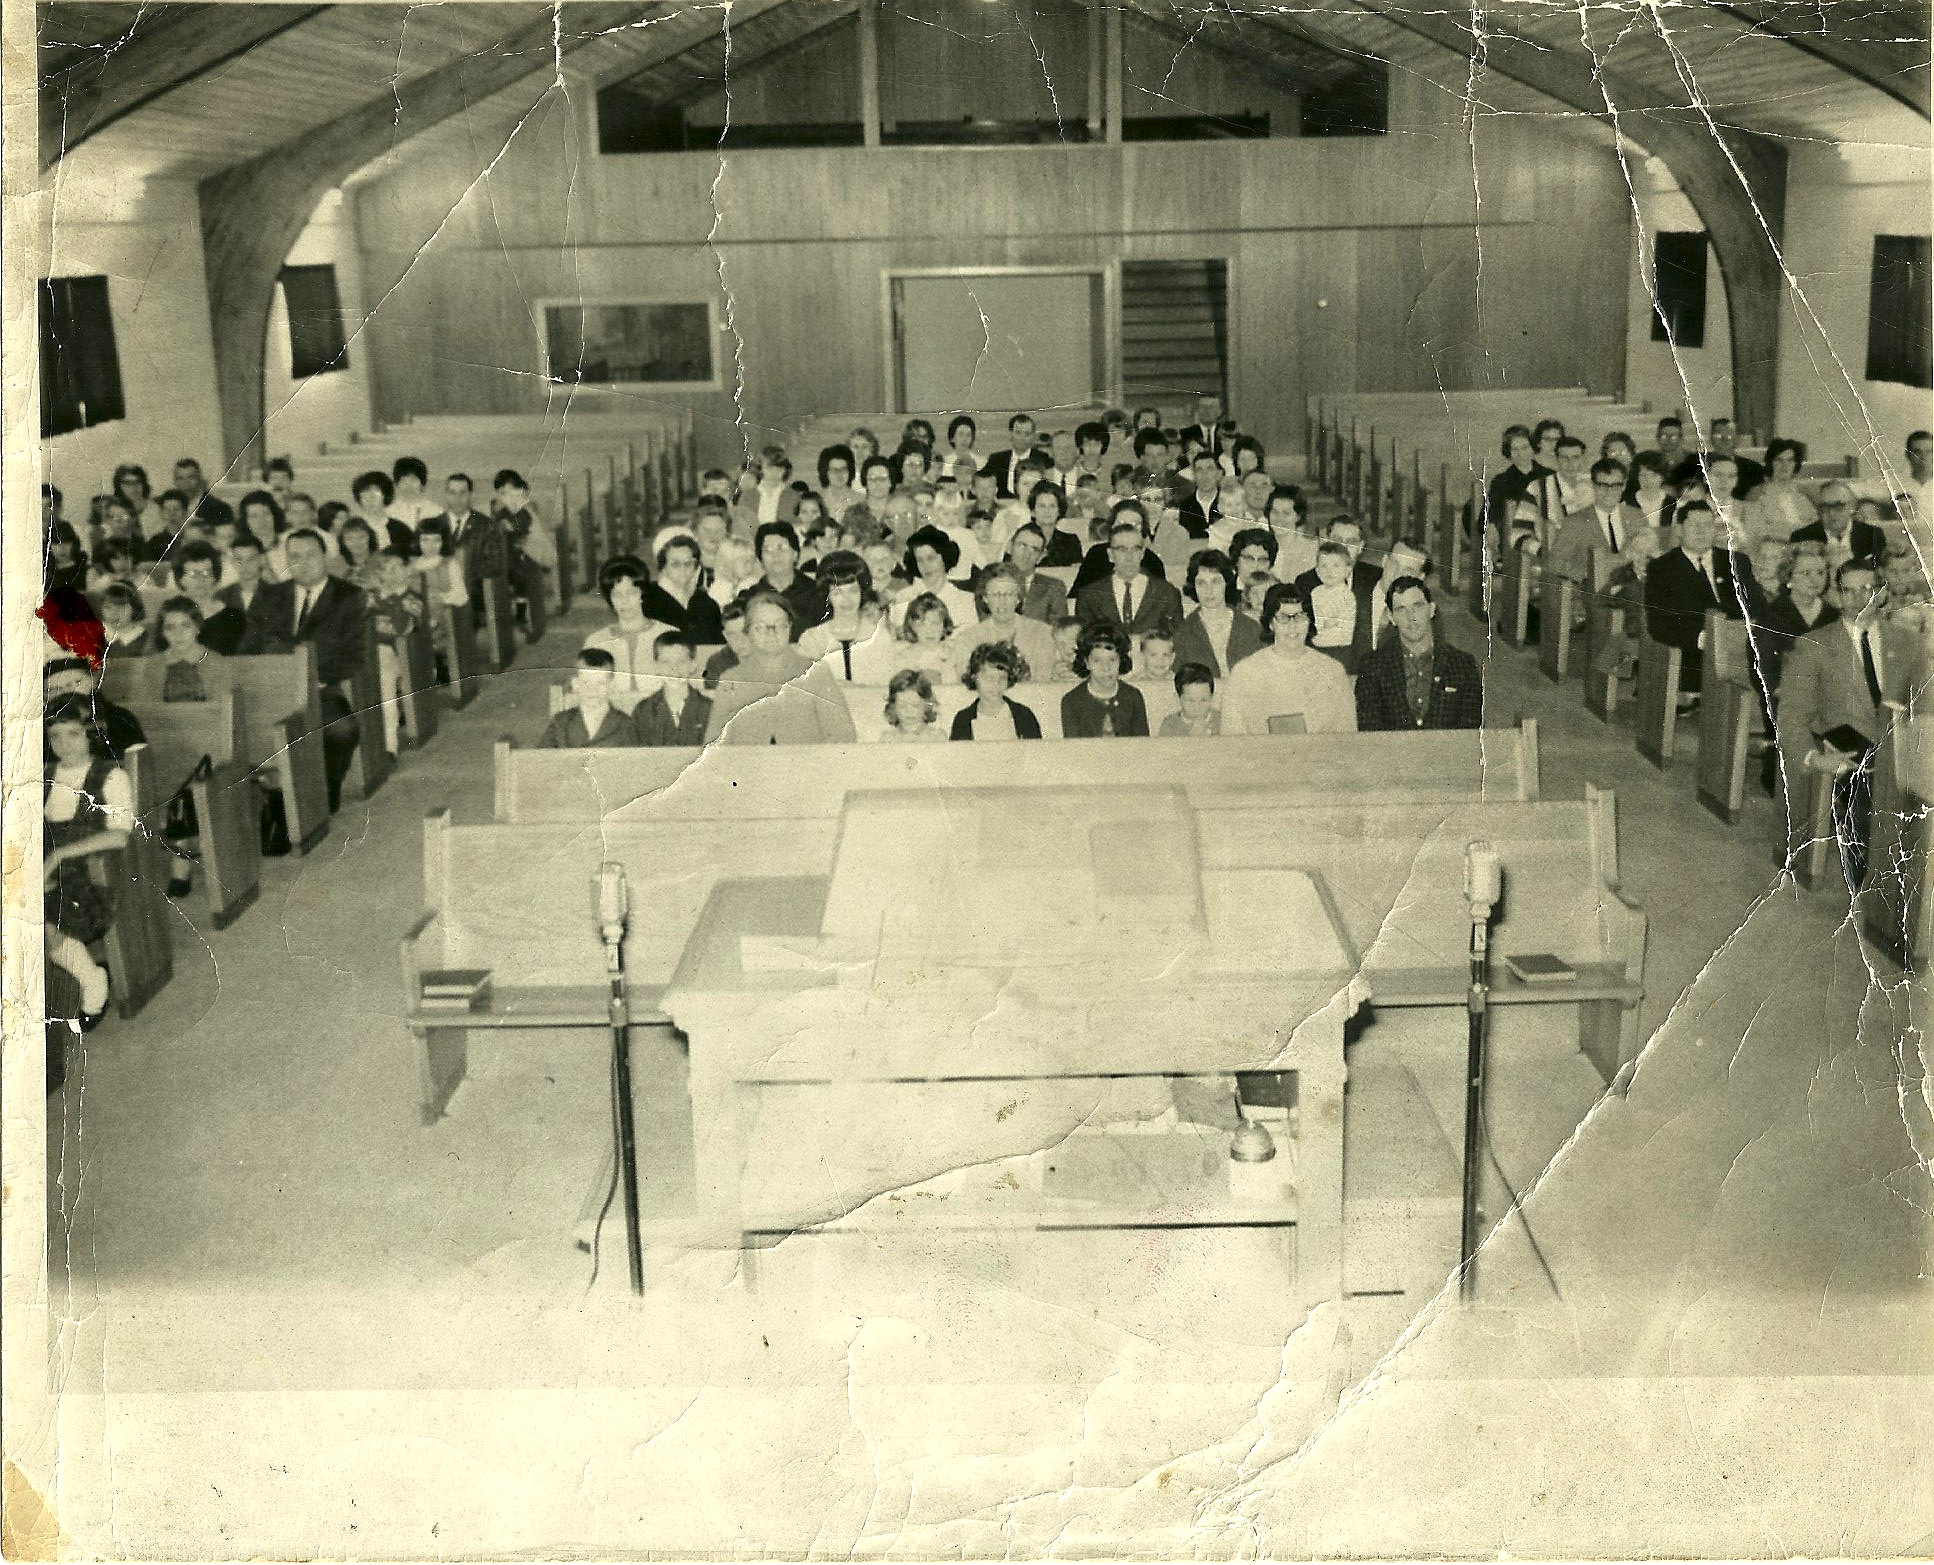 old-auditorium-and-audience